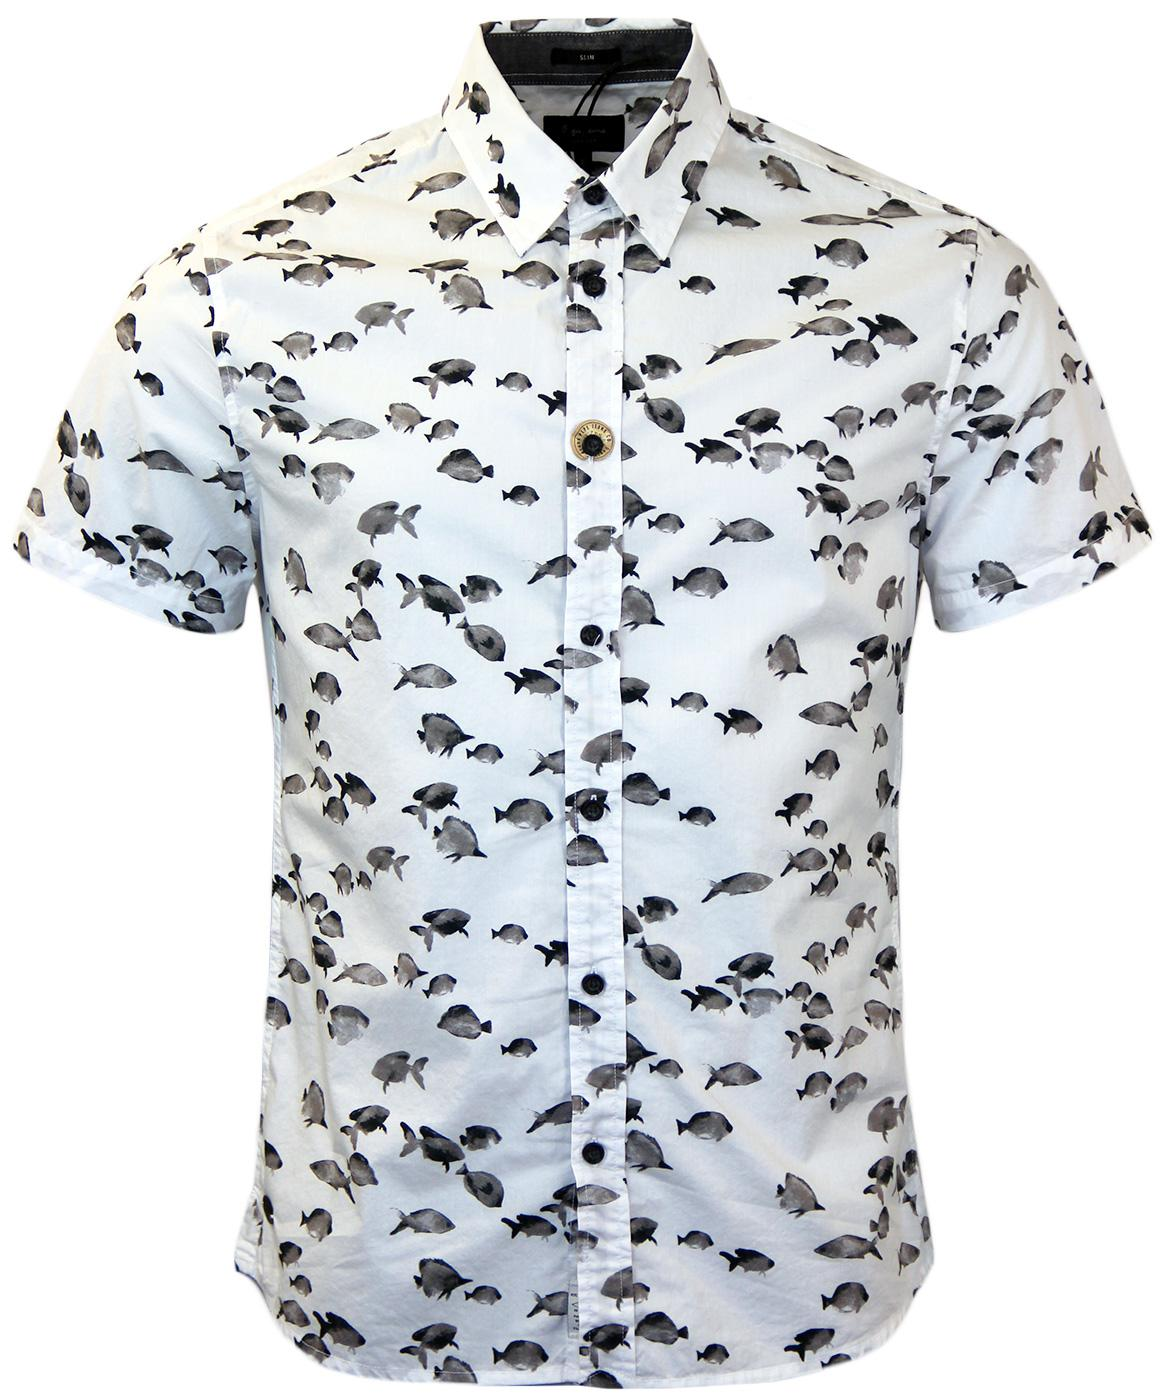 Holden PEPE JEANS Monochrome Tropical Fish Shirt